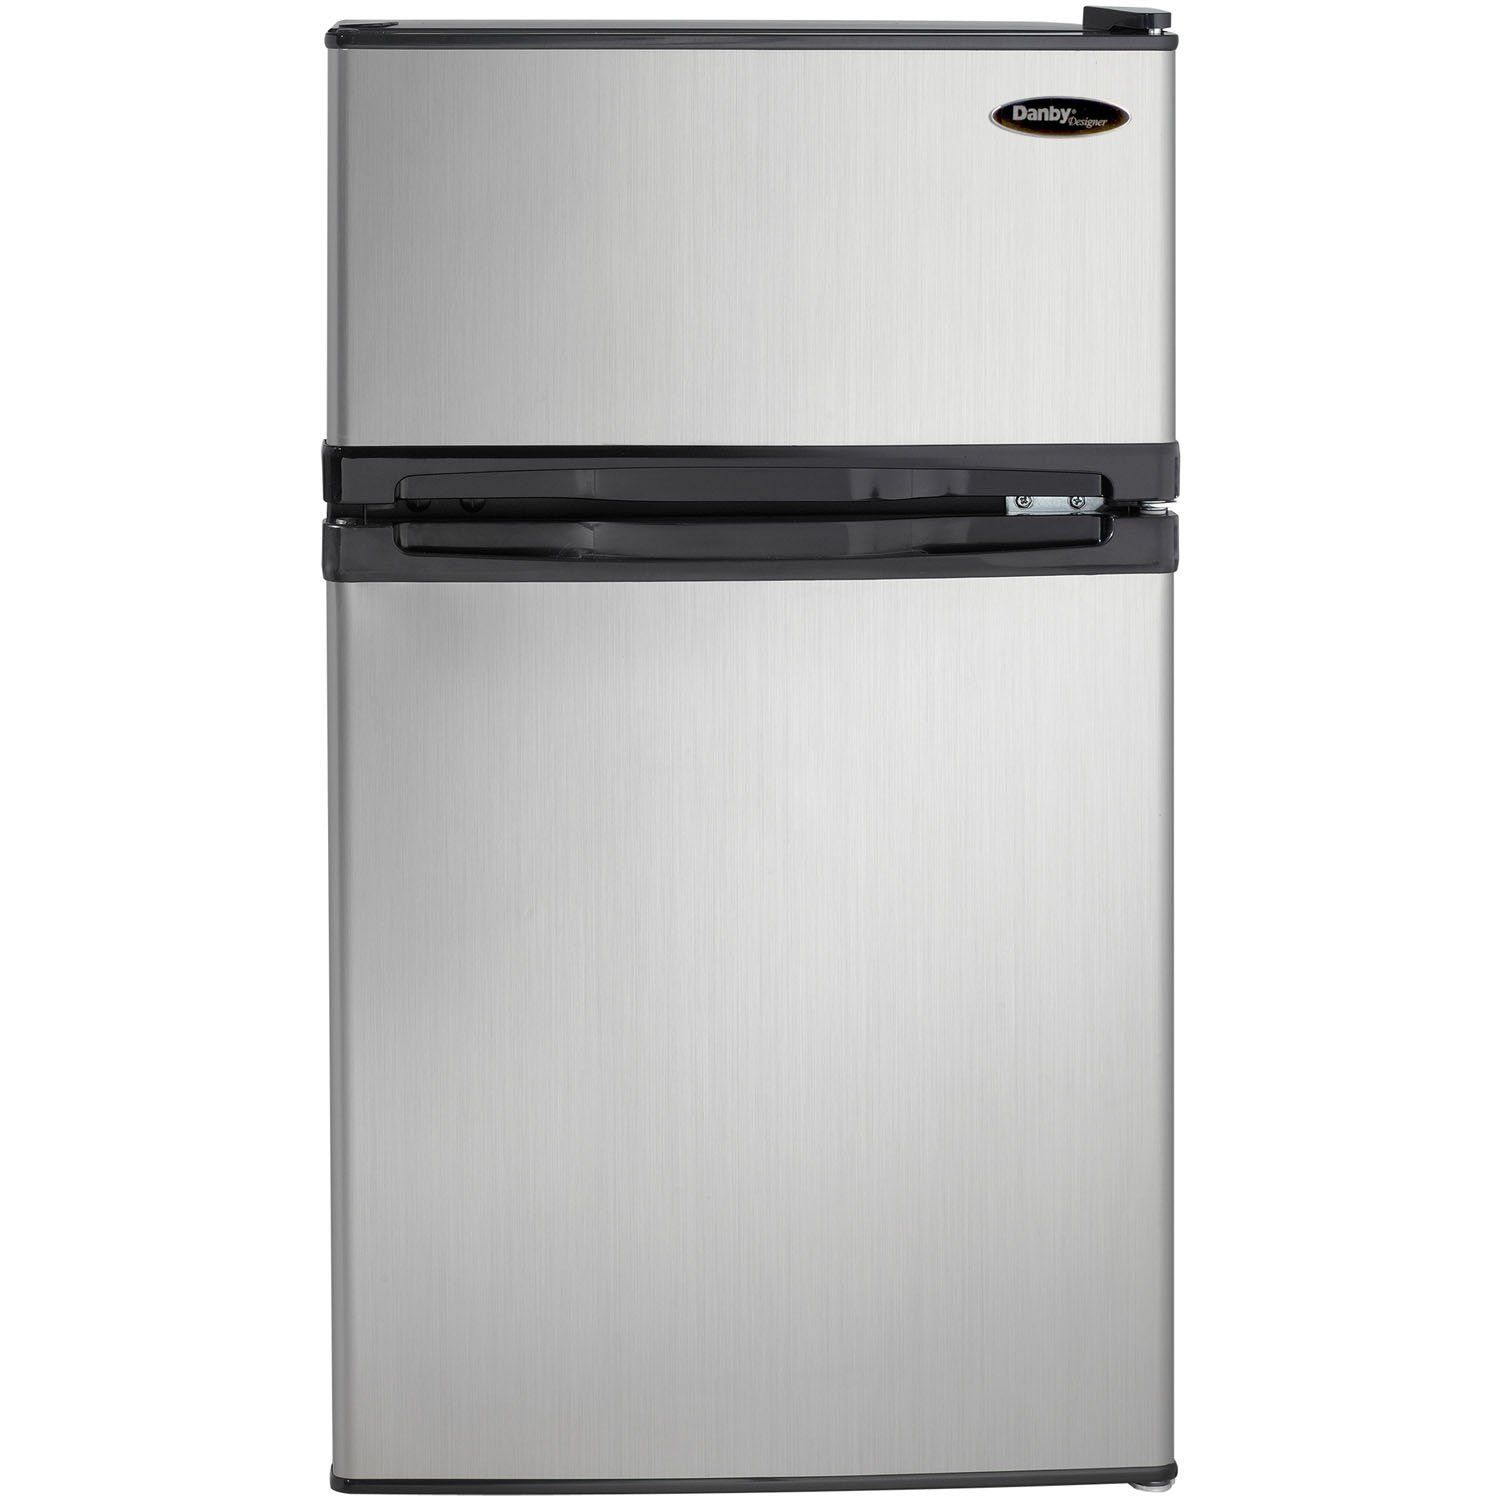 Danby Dcr031b1bsldd 3 1 Cu Ft 2 Door Compact Refrigerator Steel This Is An Amazon Affiliate Compact Fridge Compact Refrigerator Mini Fridge With Freezer